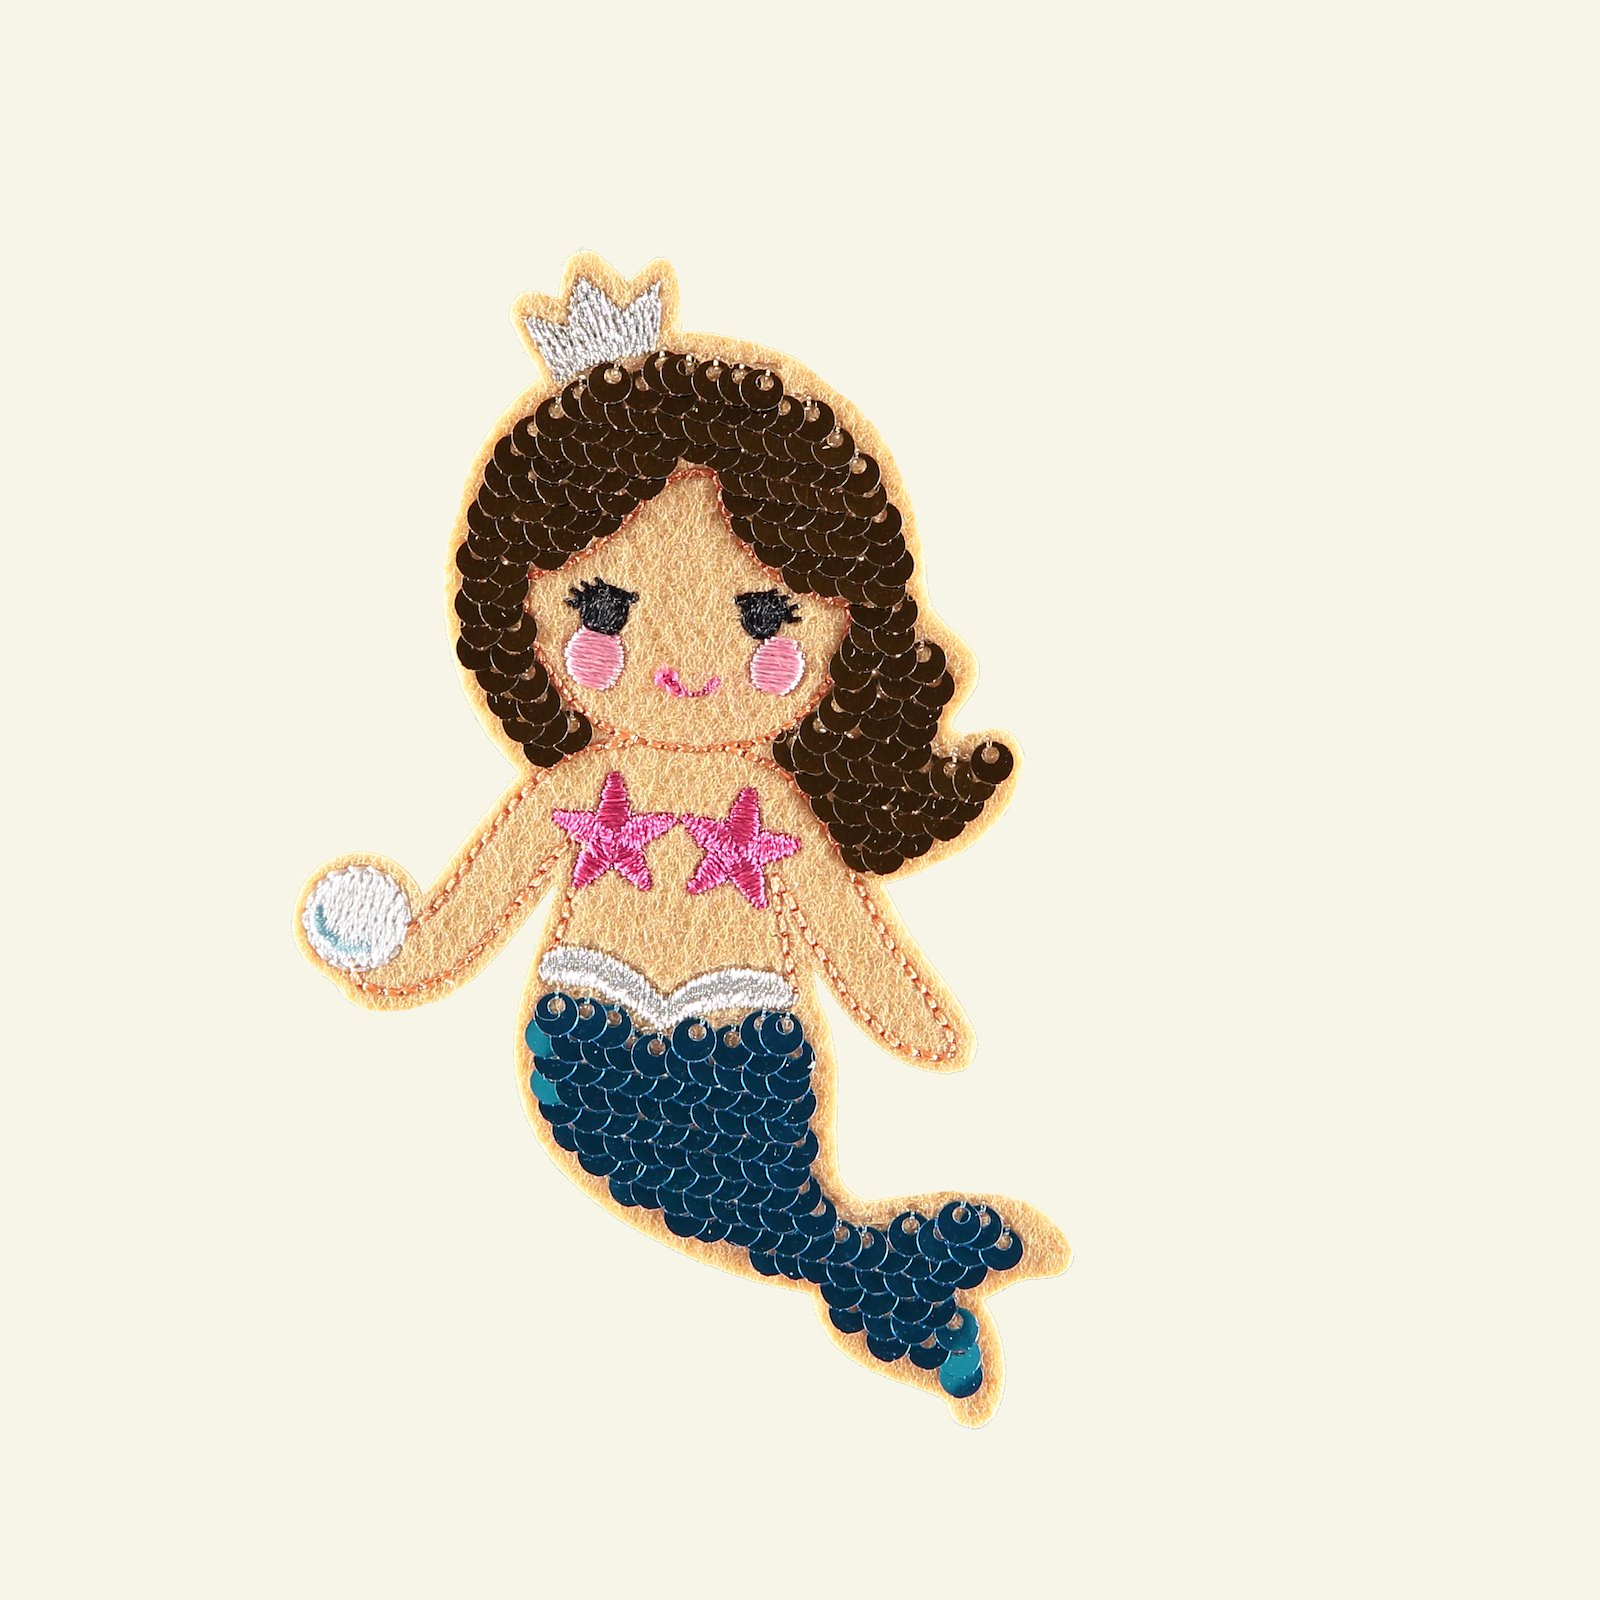 Patch mermaid sequin 100x75mm 1pc 26327_pack